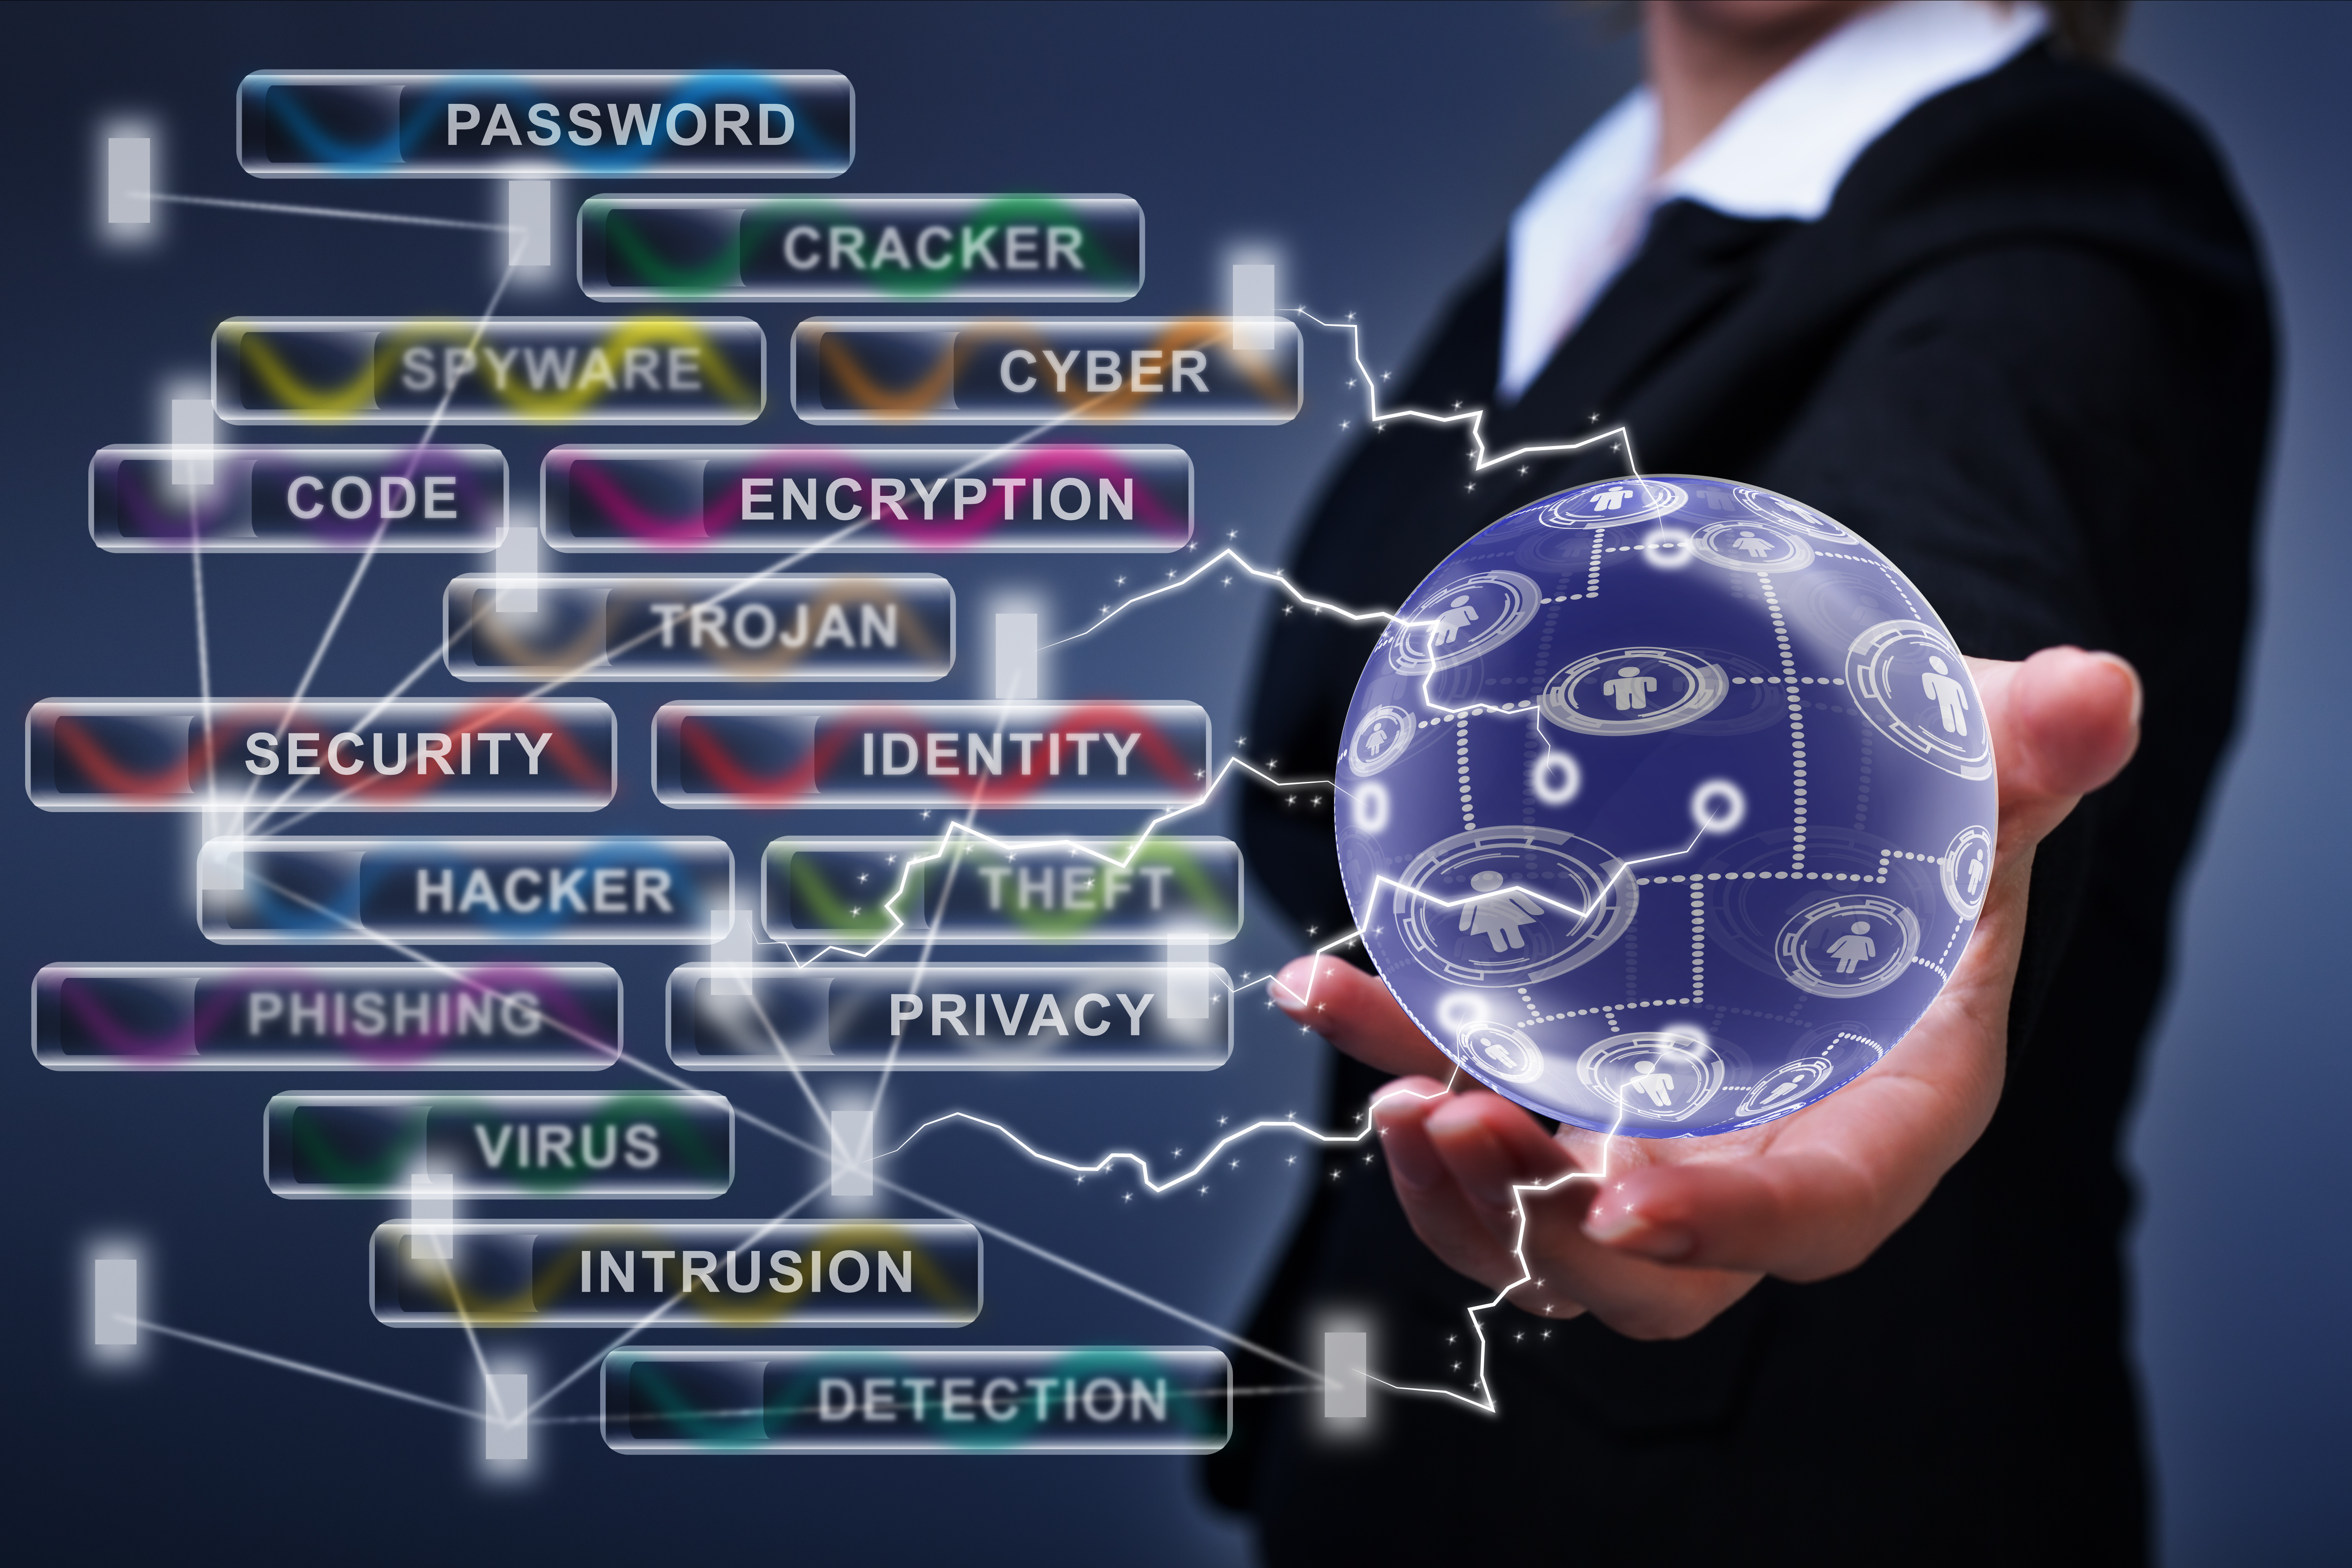 cyber security services, IT security services, cyber attack, computer viruses